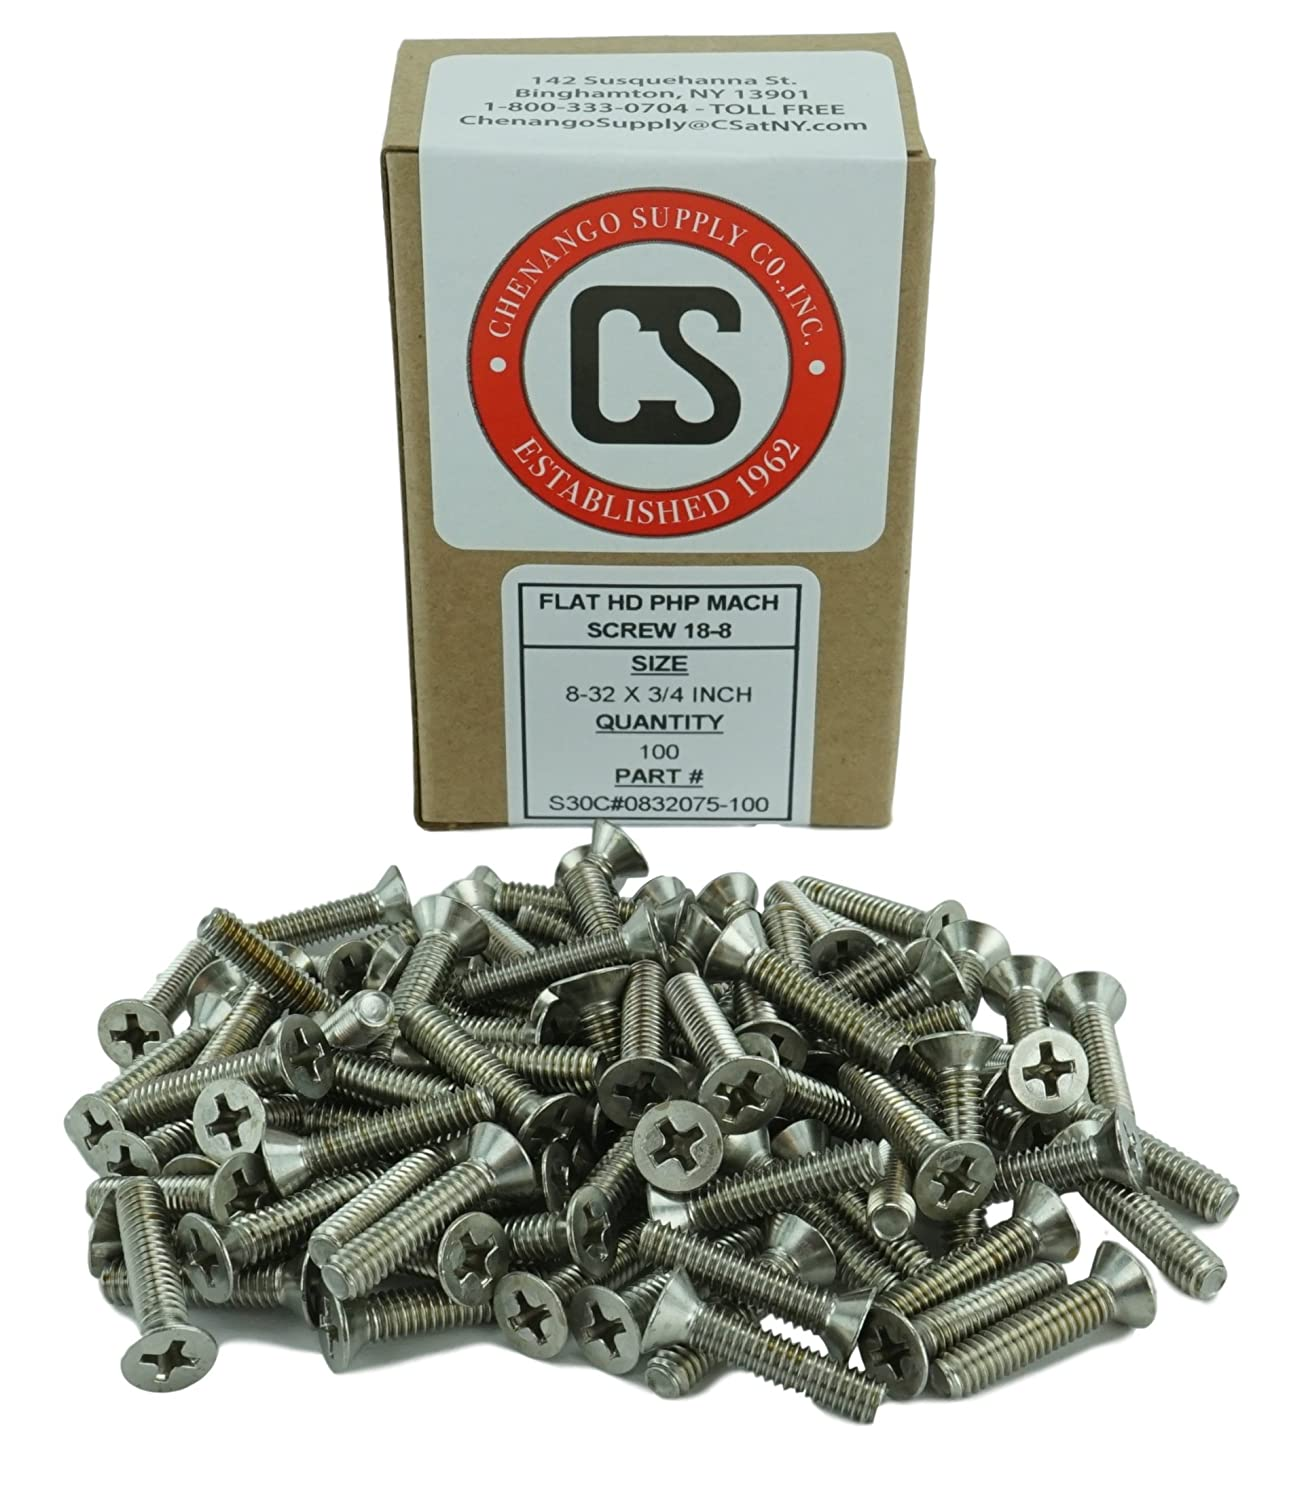 Full Thread 1//2 to 2 Lengths Available Phillips Drive Machine Thread Stainless 8-32 x 1 Flat Head Machine Screws Chenango Supply 8-32 x 1 Stainless Steel 18-8